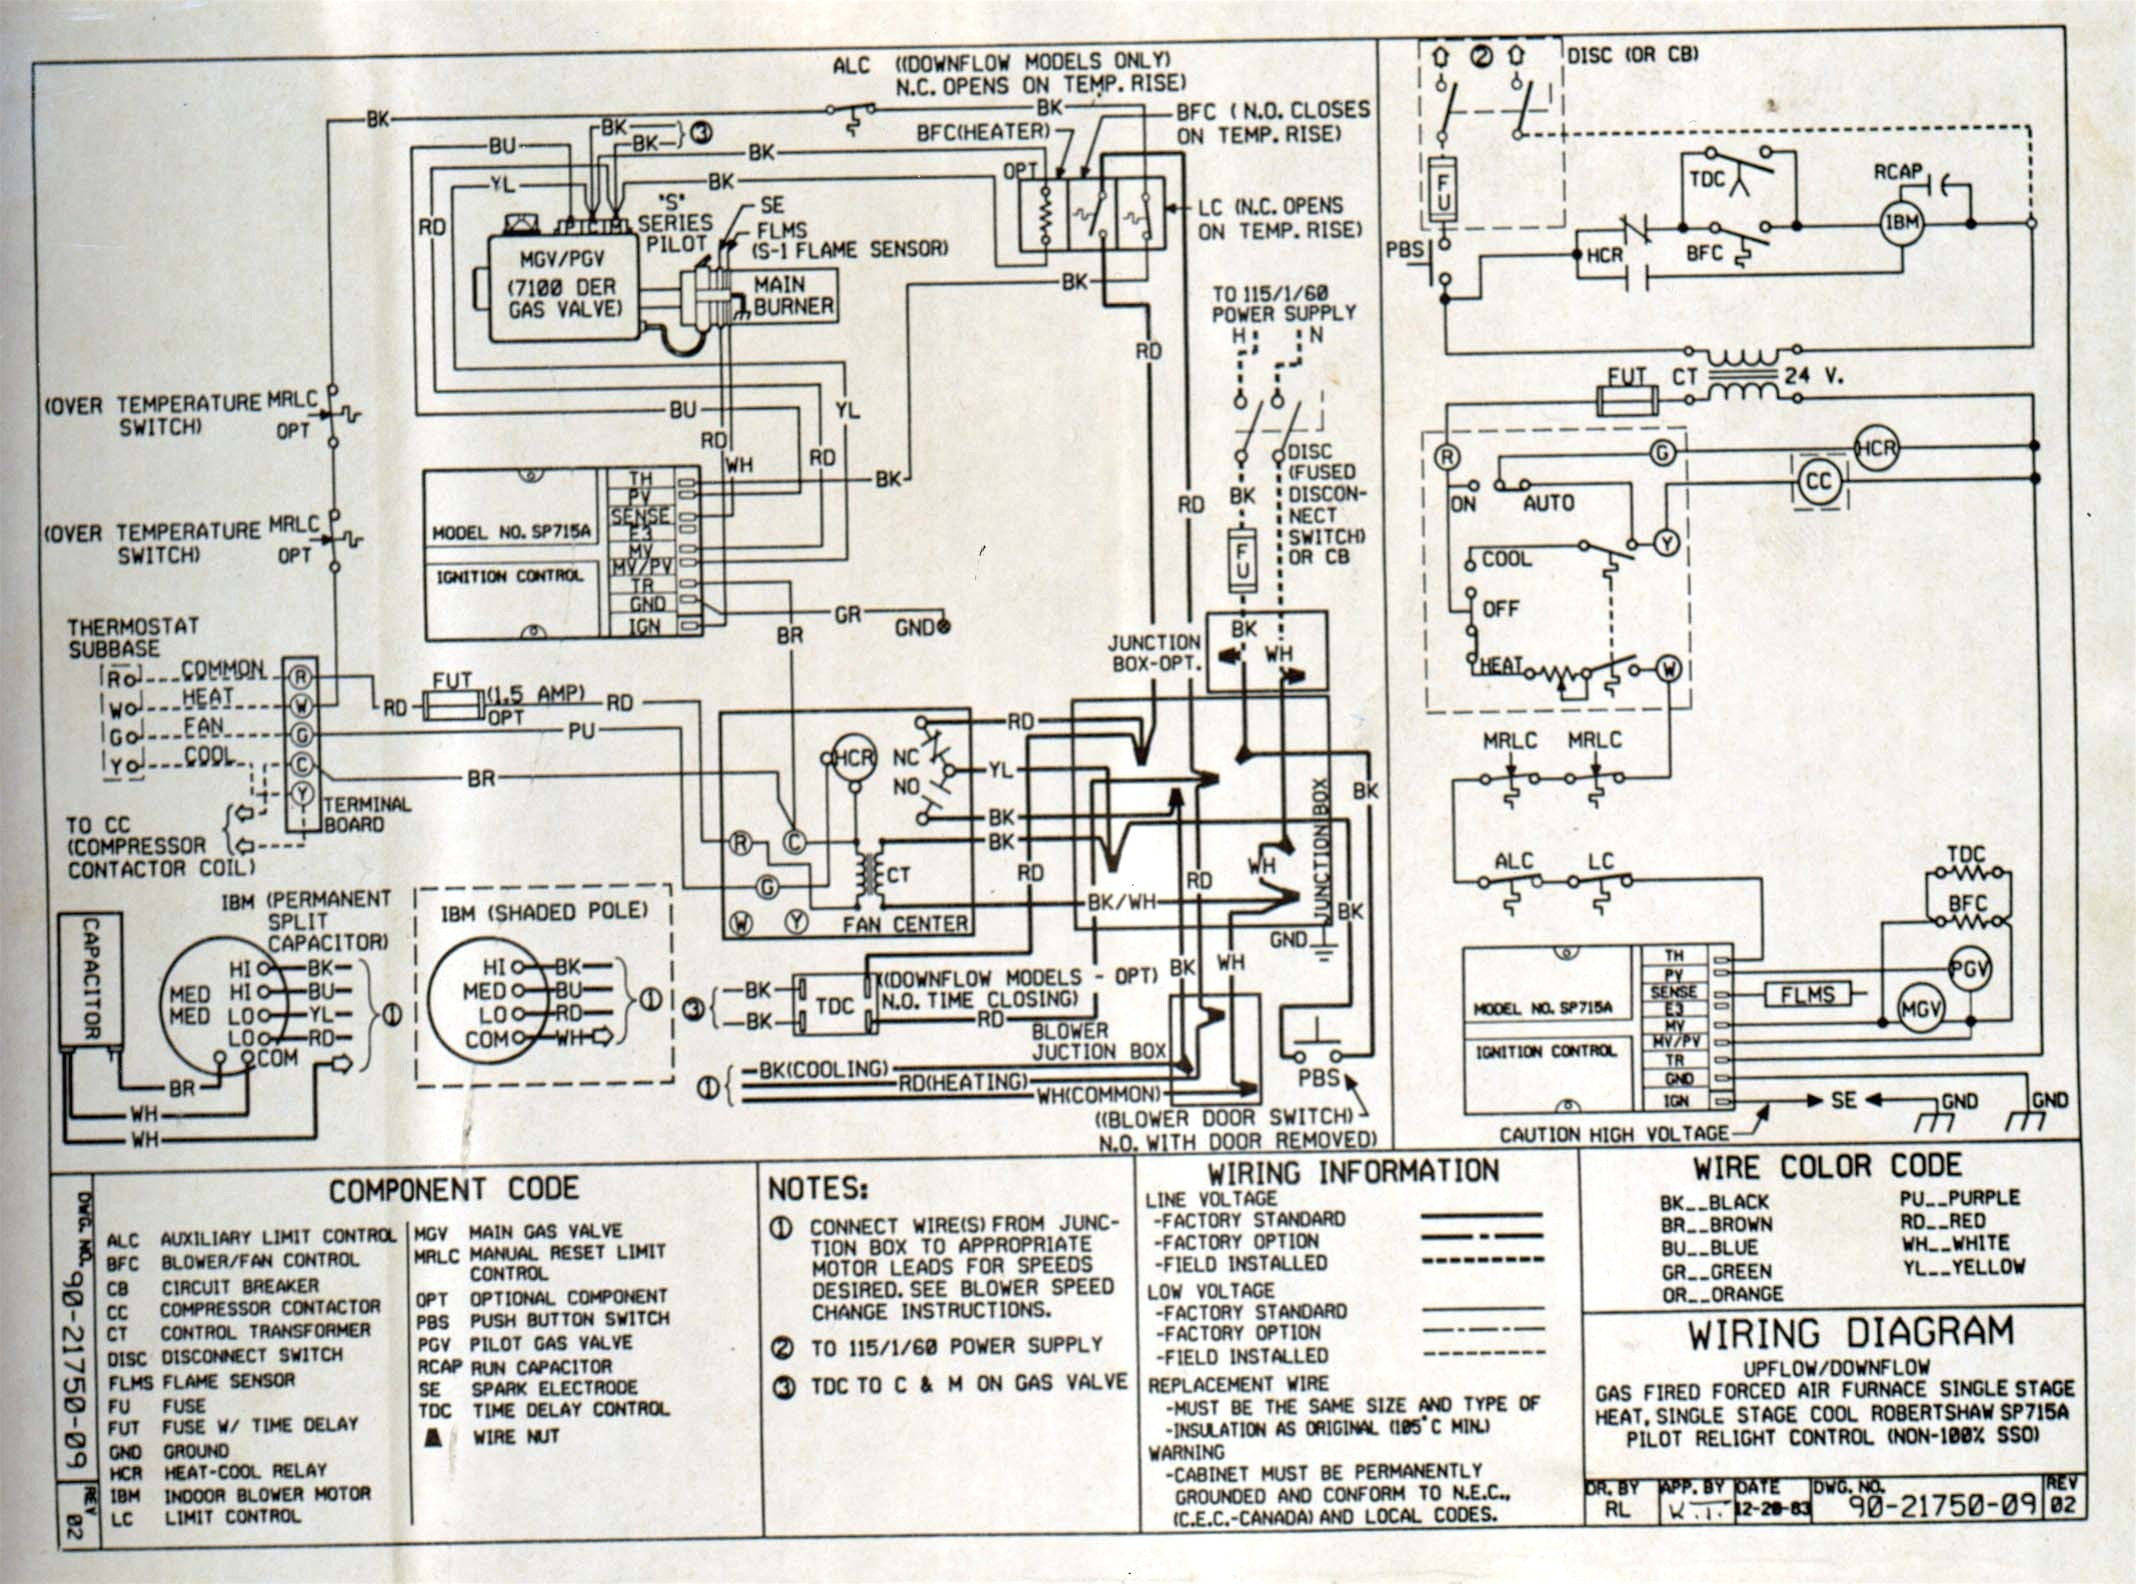 Payne Electric Furnace Wiring Diagram Inspirationa Payne Air Handler Wiring Diagram In Image Goodman Electric Lovely